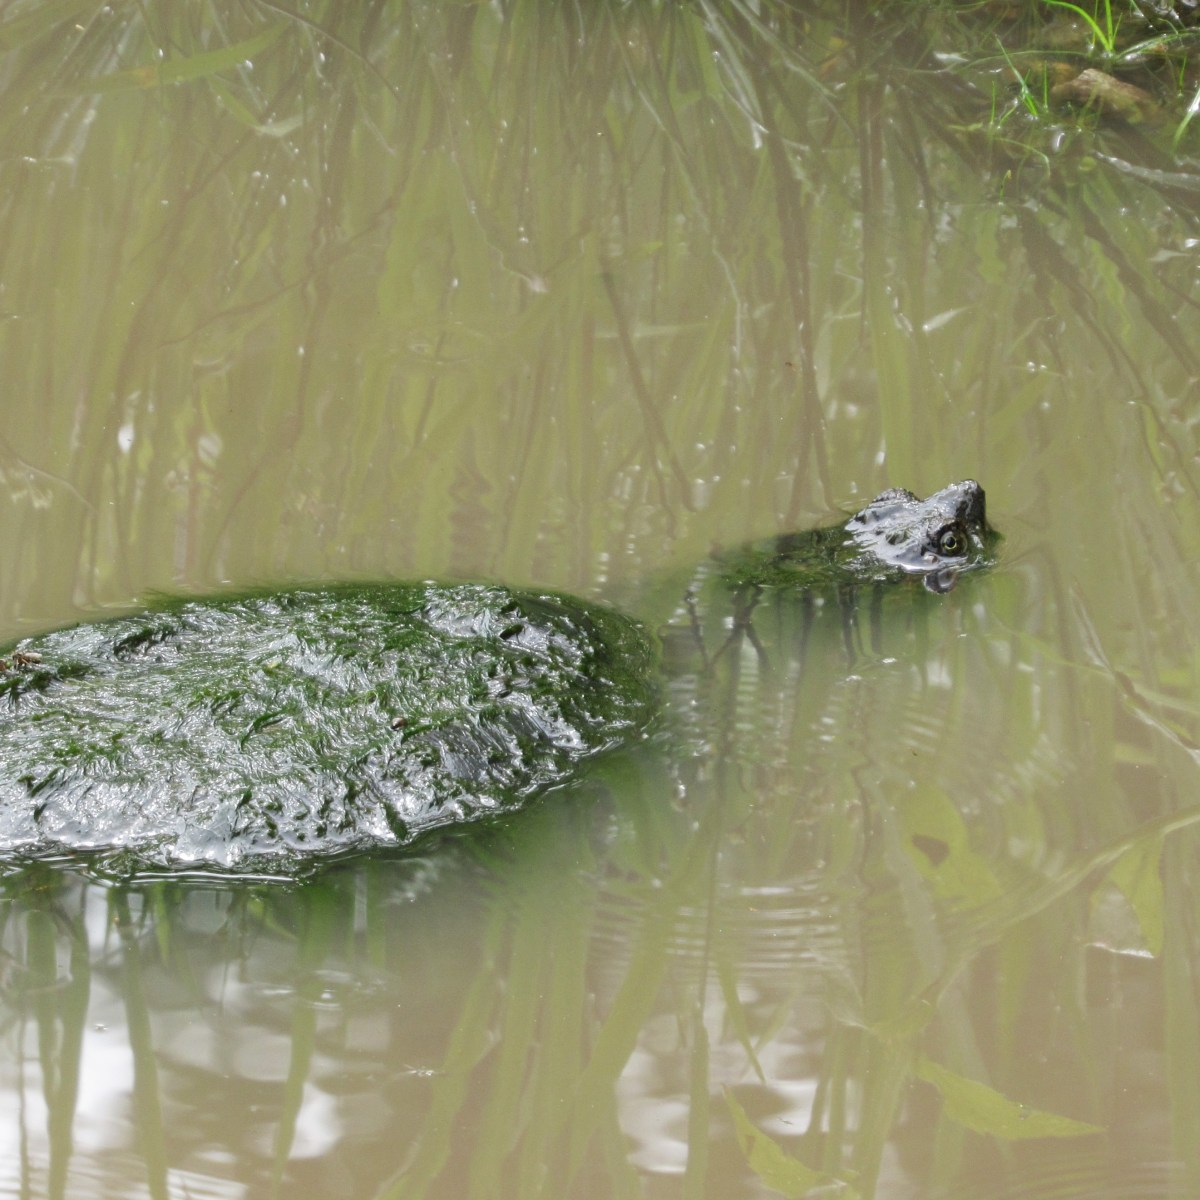 A snapping turtle swimming in brownish-green water